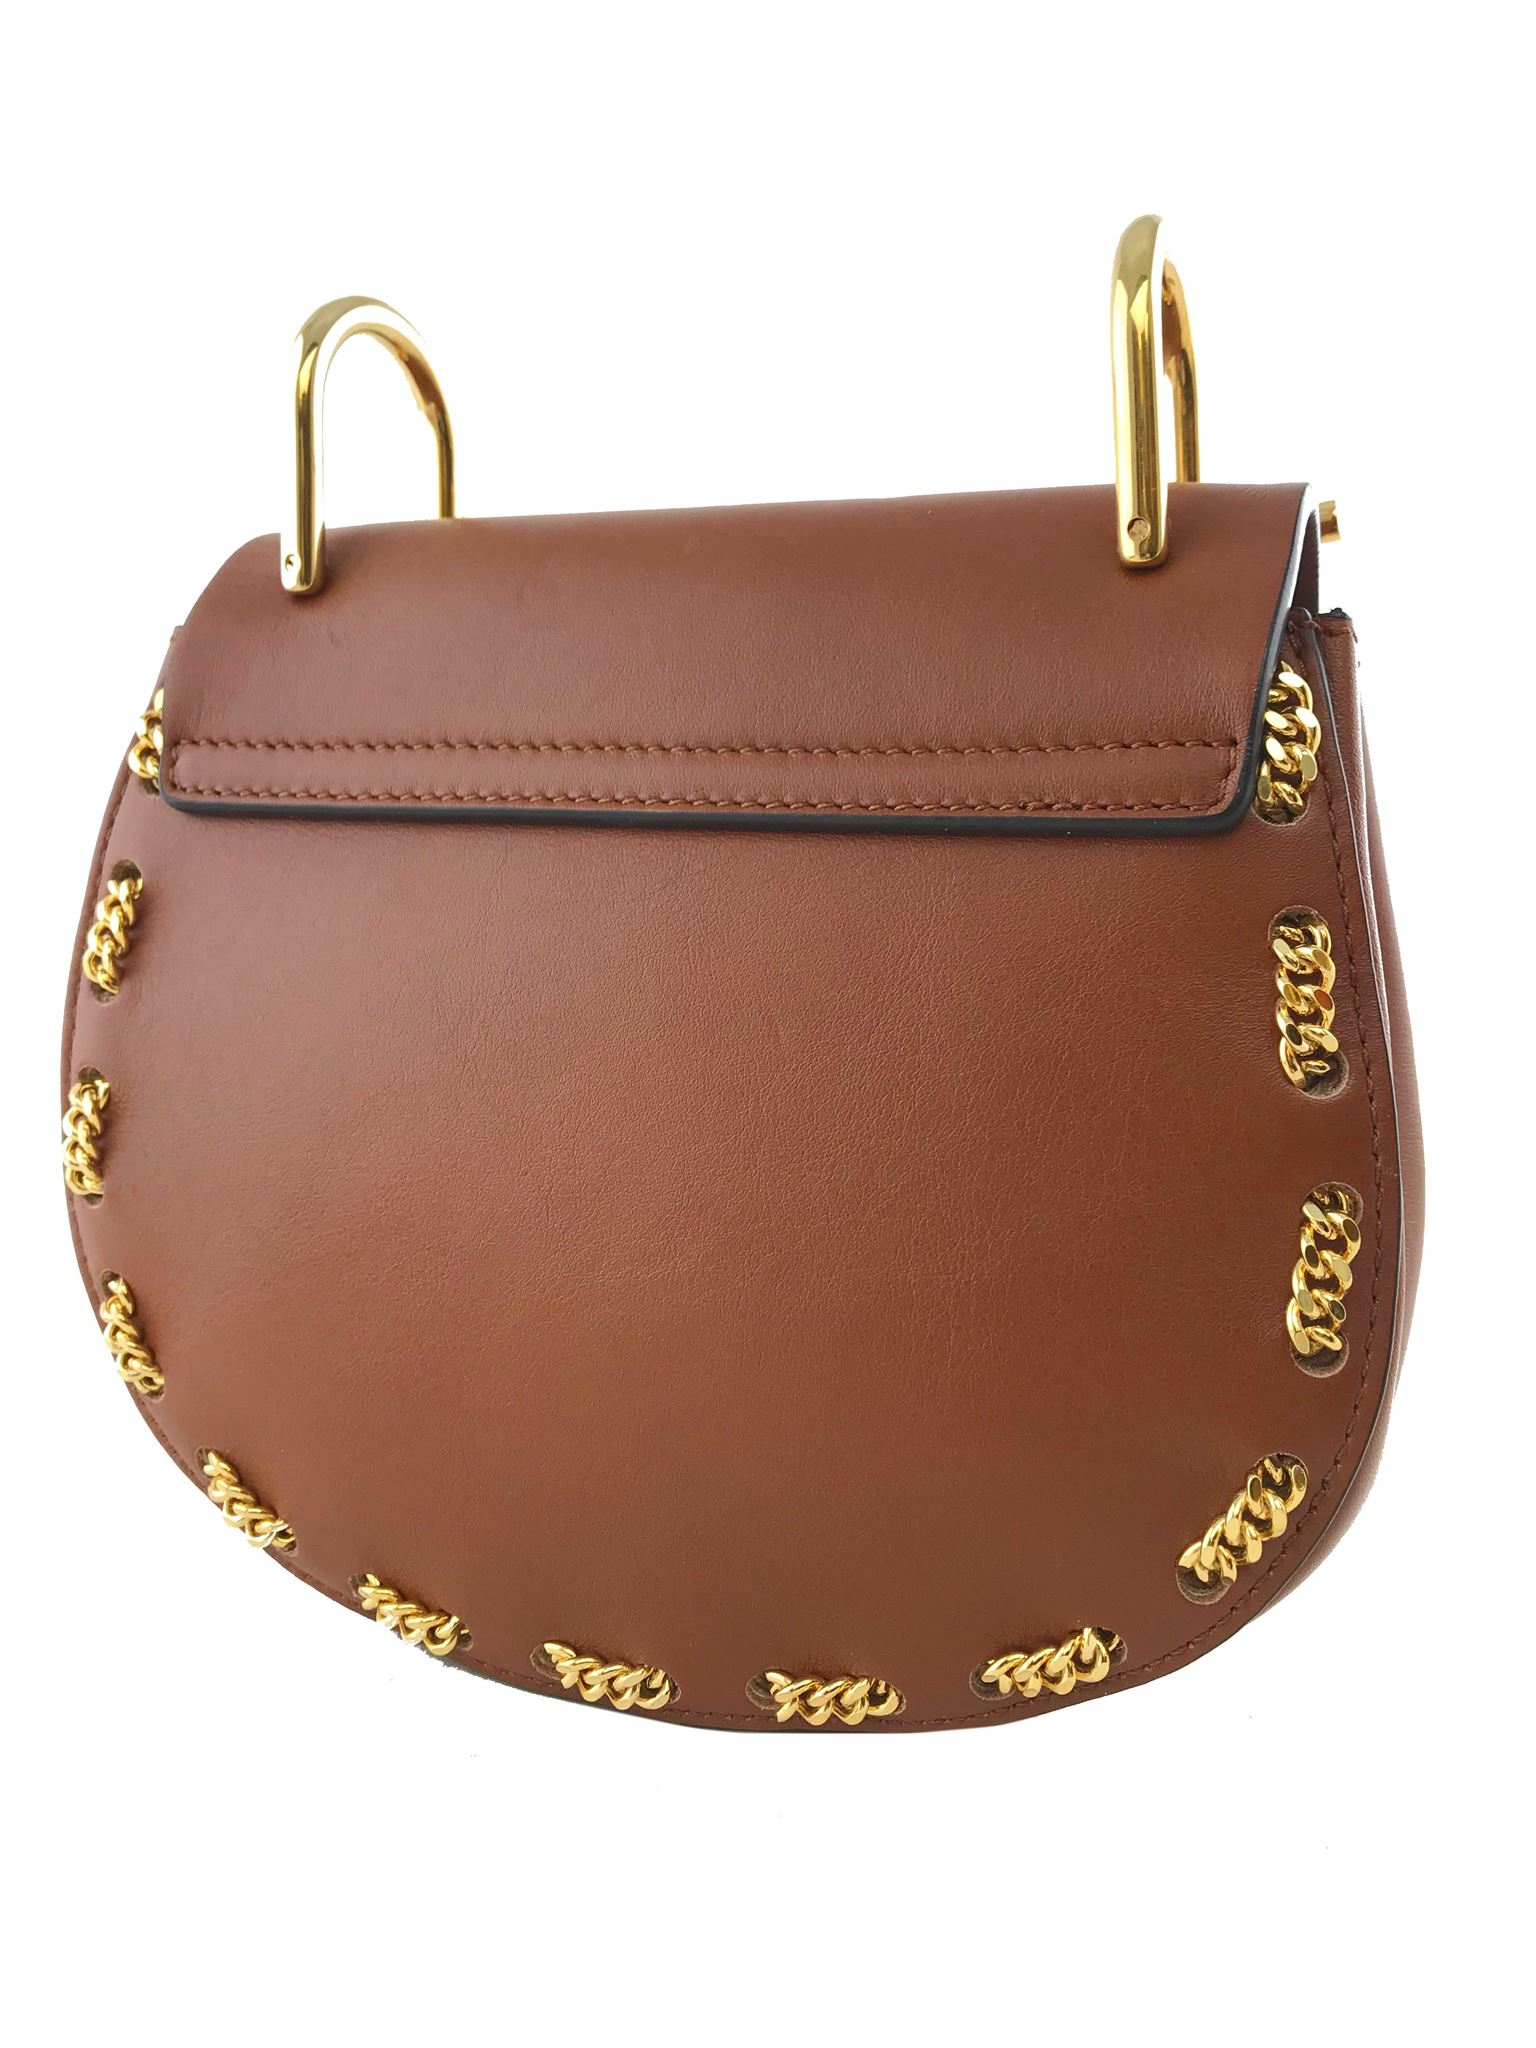 c915f672a730 Chloe Drew Mini Chain-Threaded Leather Shoulder Bag. Liquid error  Index  was out of range. Must be non-negative and less than the size of the  collection.